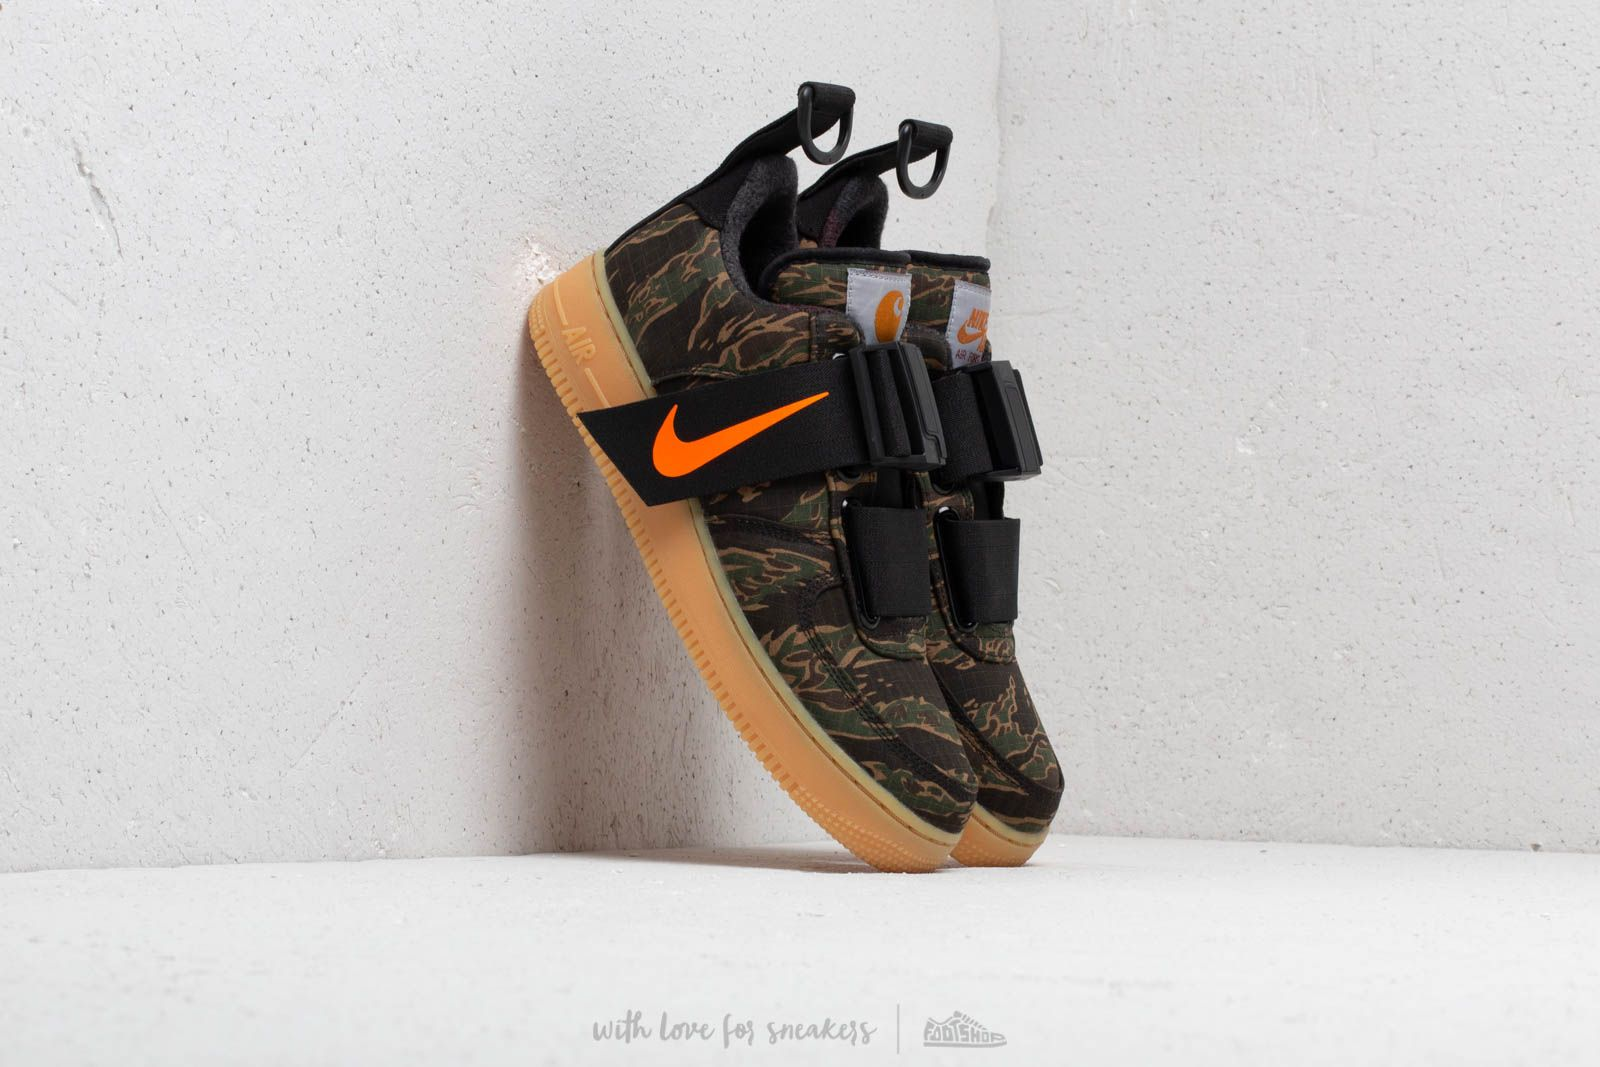 Nike x Carhartt WIP Air Force 1 UT Low Premium